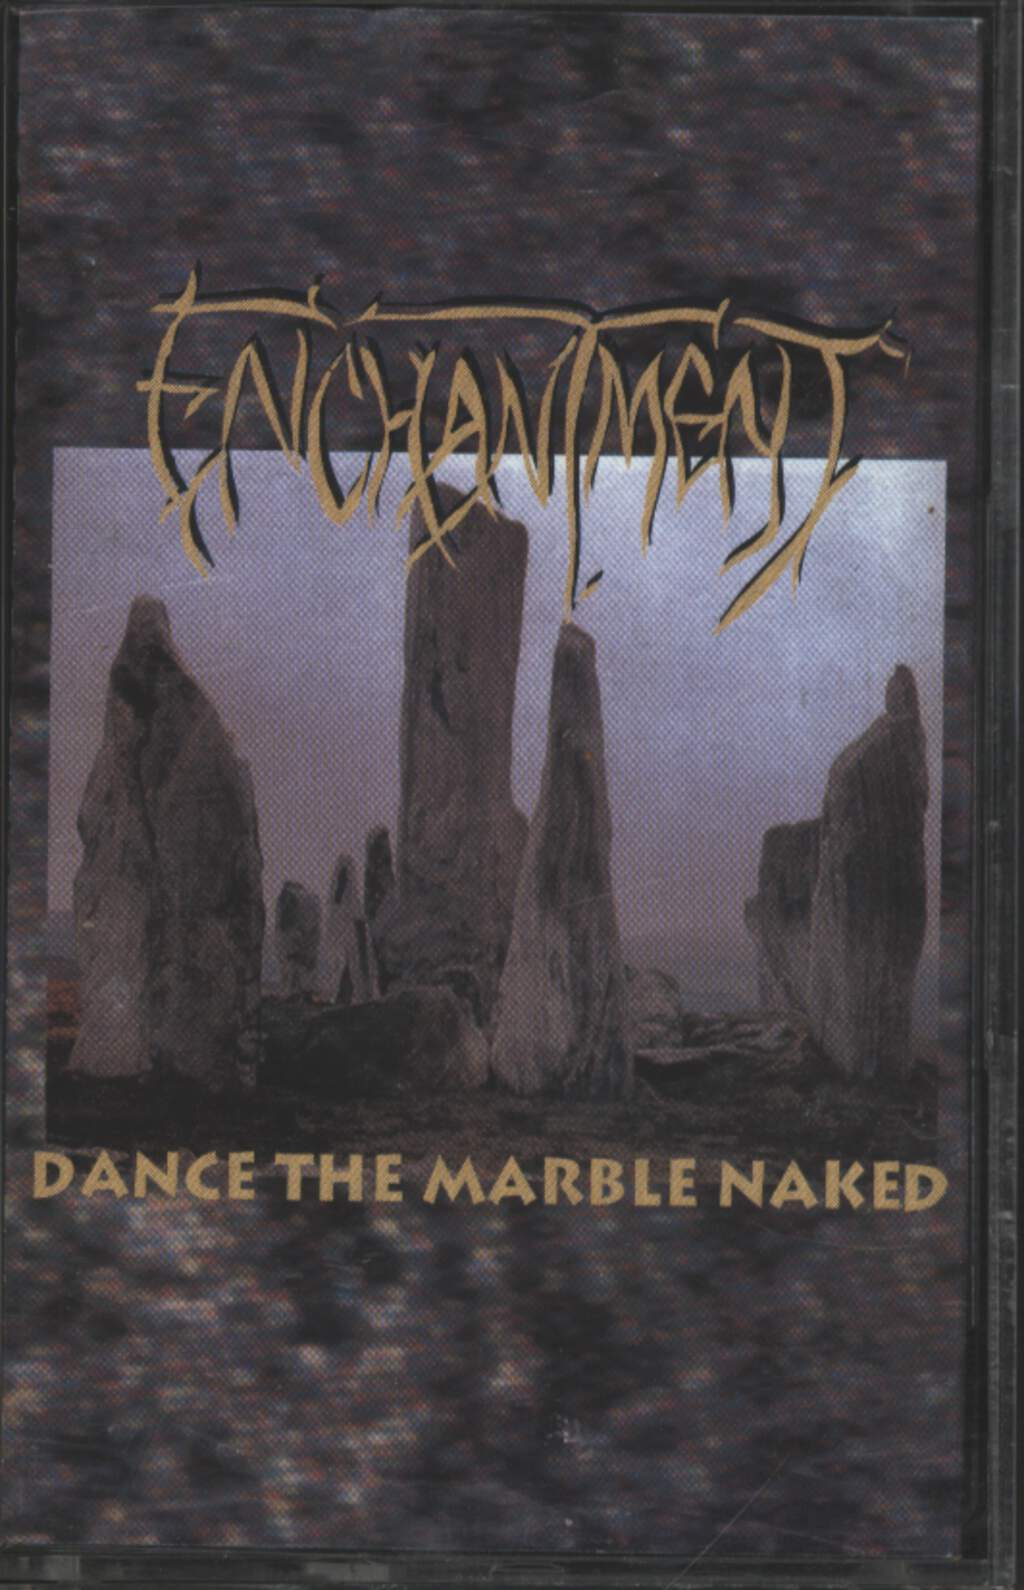 Enchantment: Dance The Marble Naked, Compact Cassette